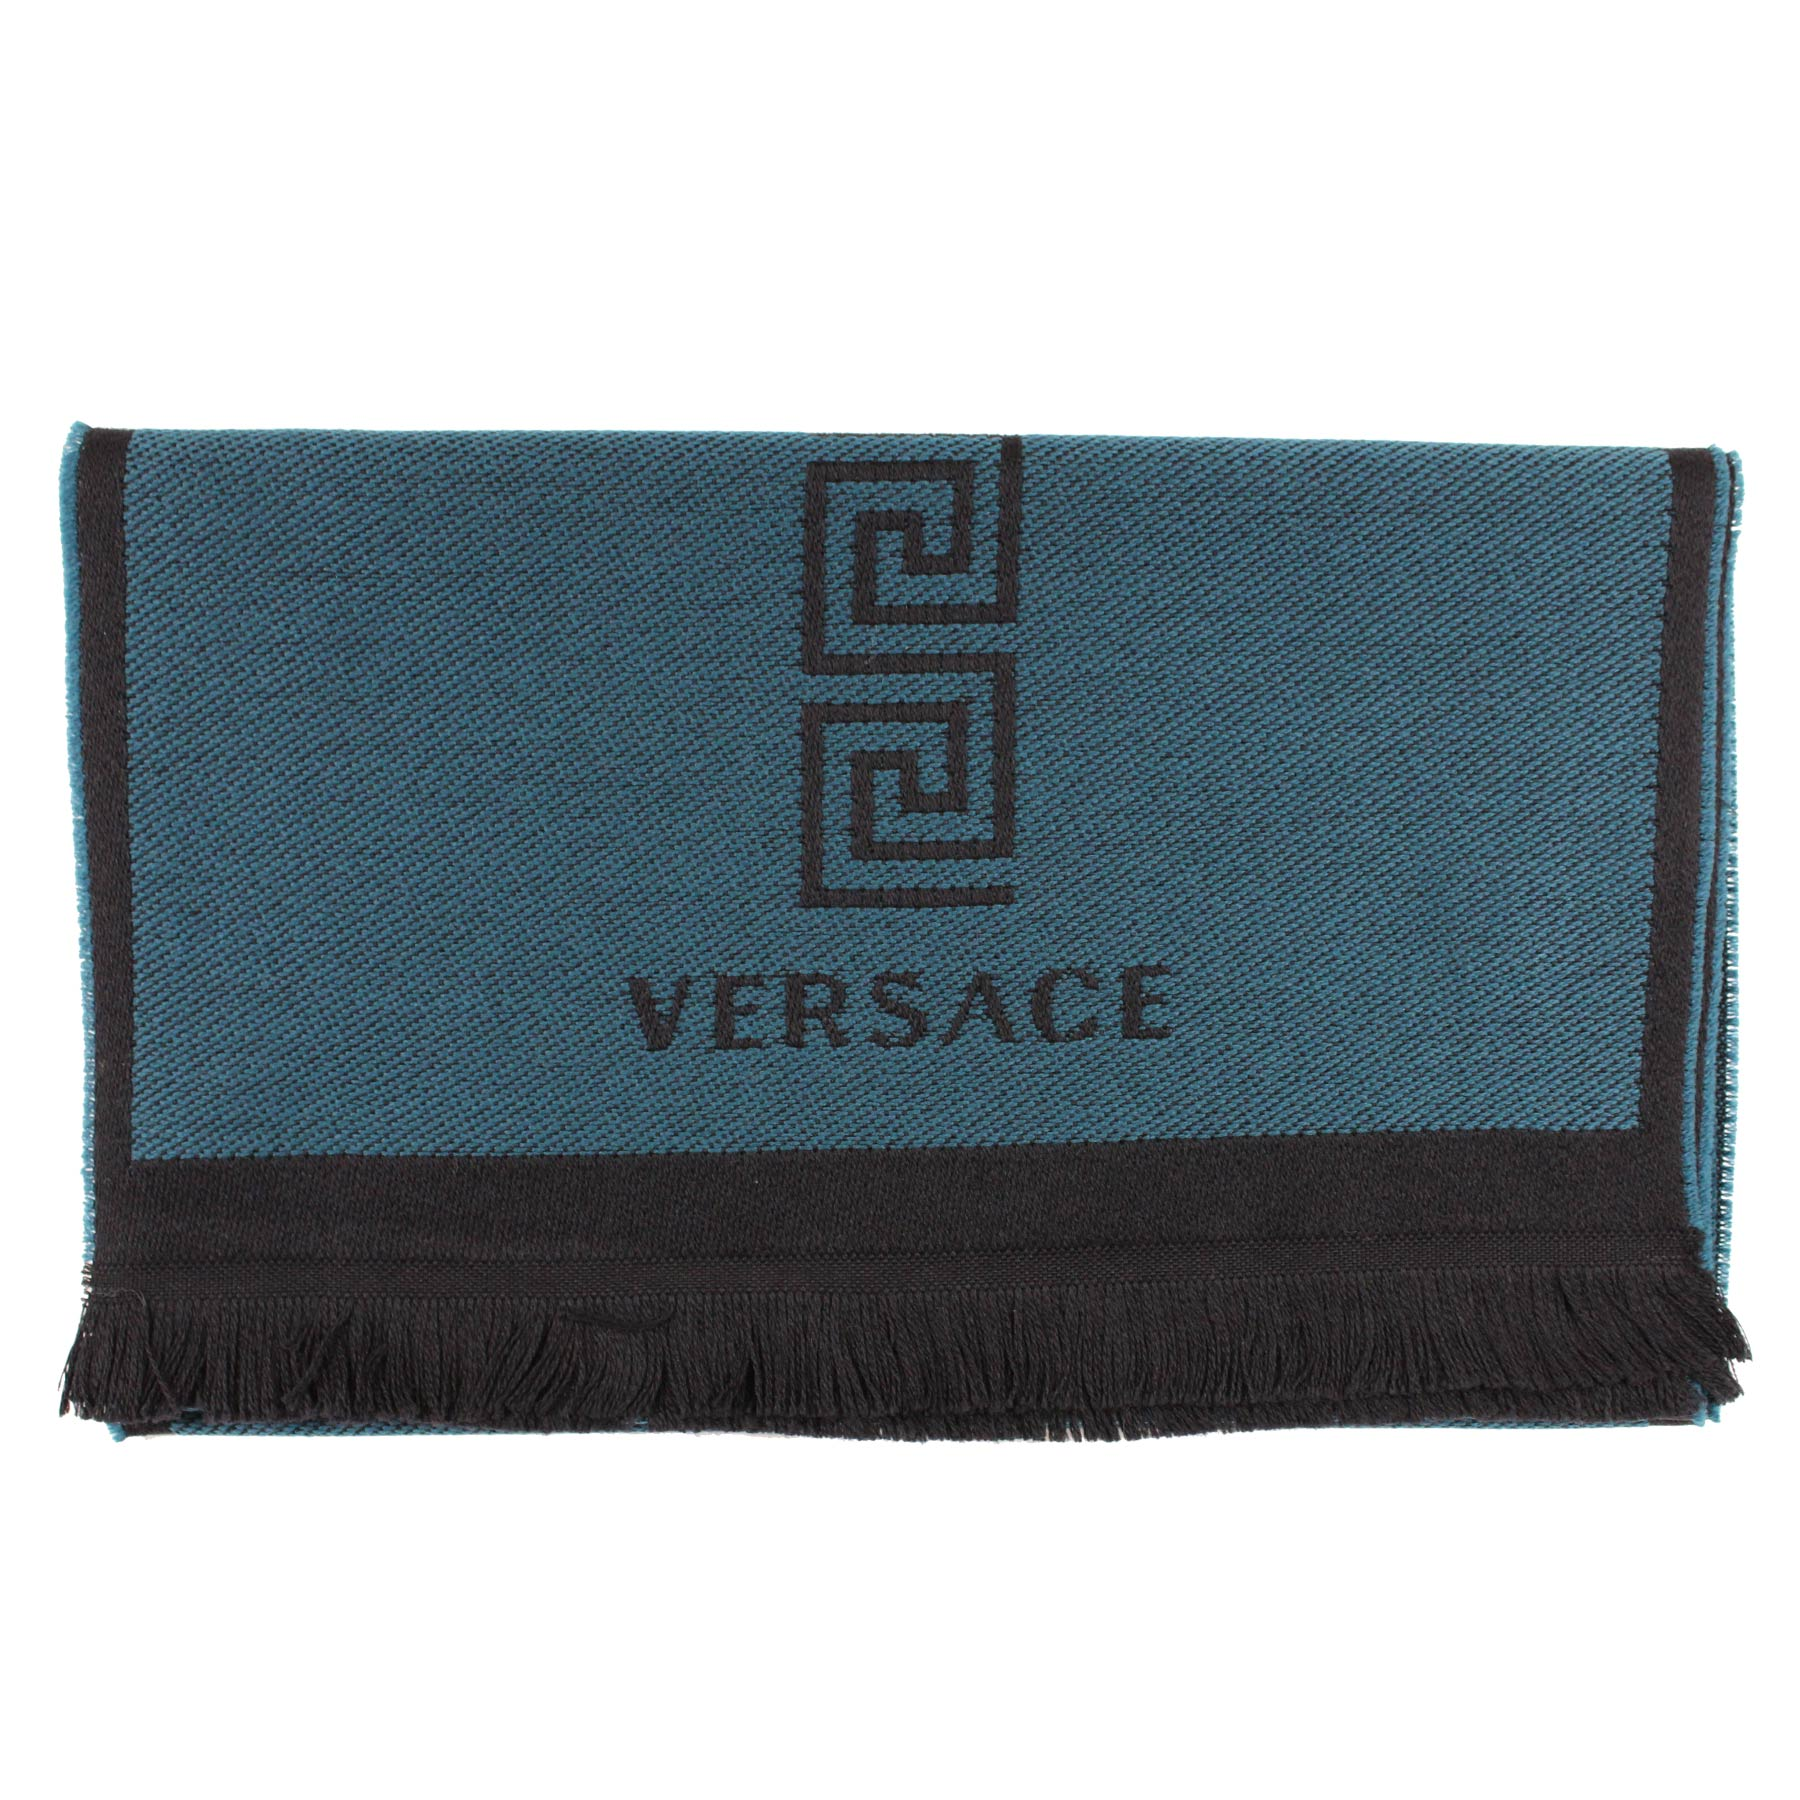 Versace Scarf Black Teal Medusa & Greek Knit